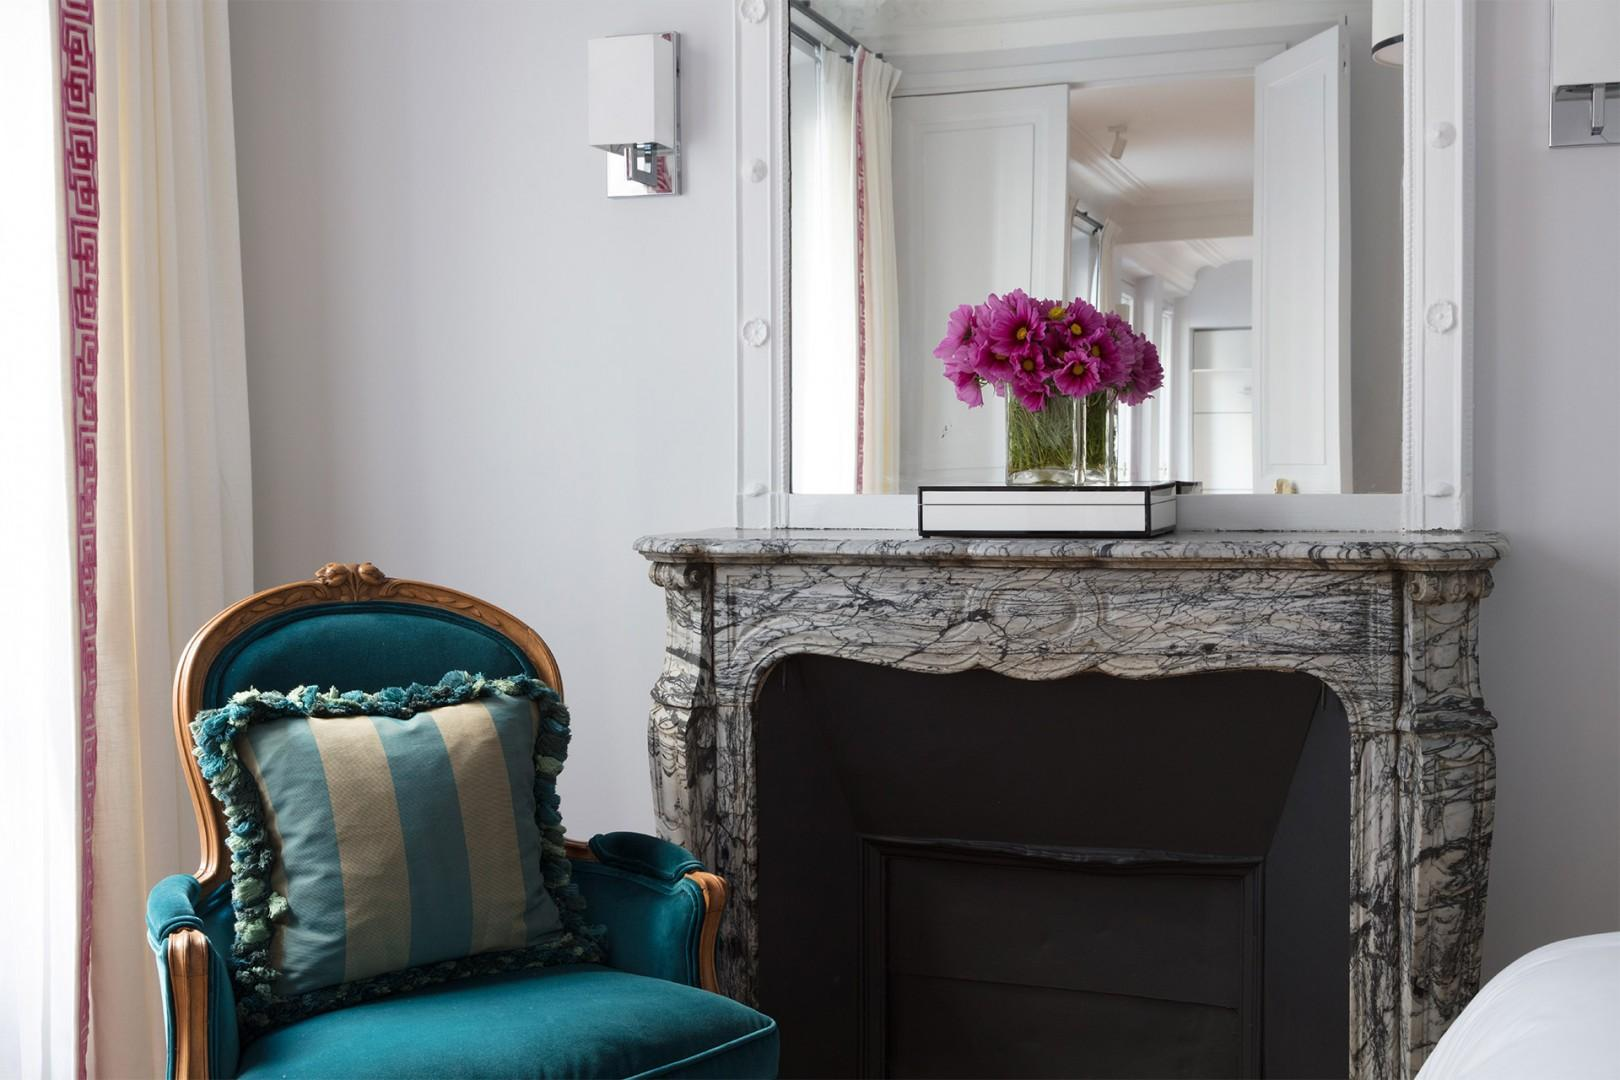 The marble fireplace in bedroom 1 adds lots of charm.